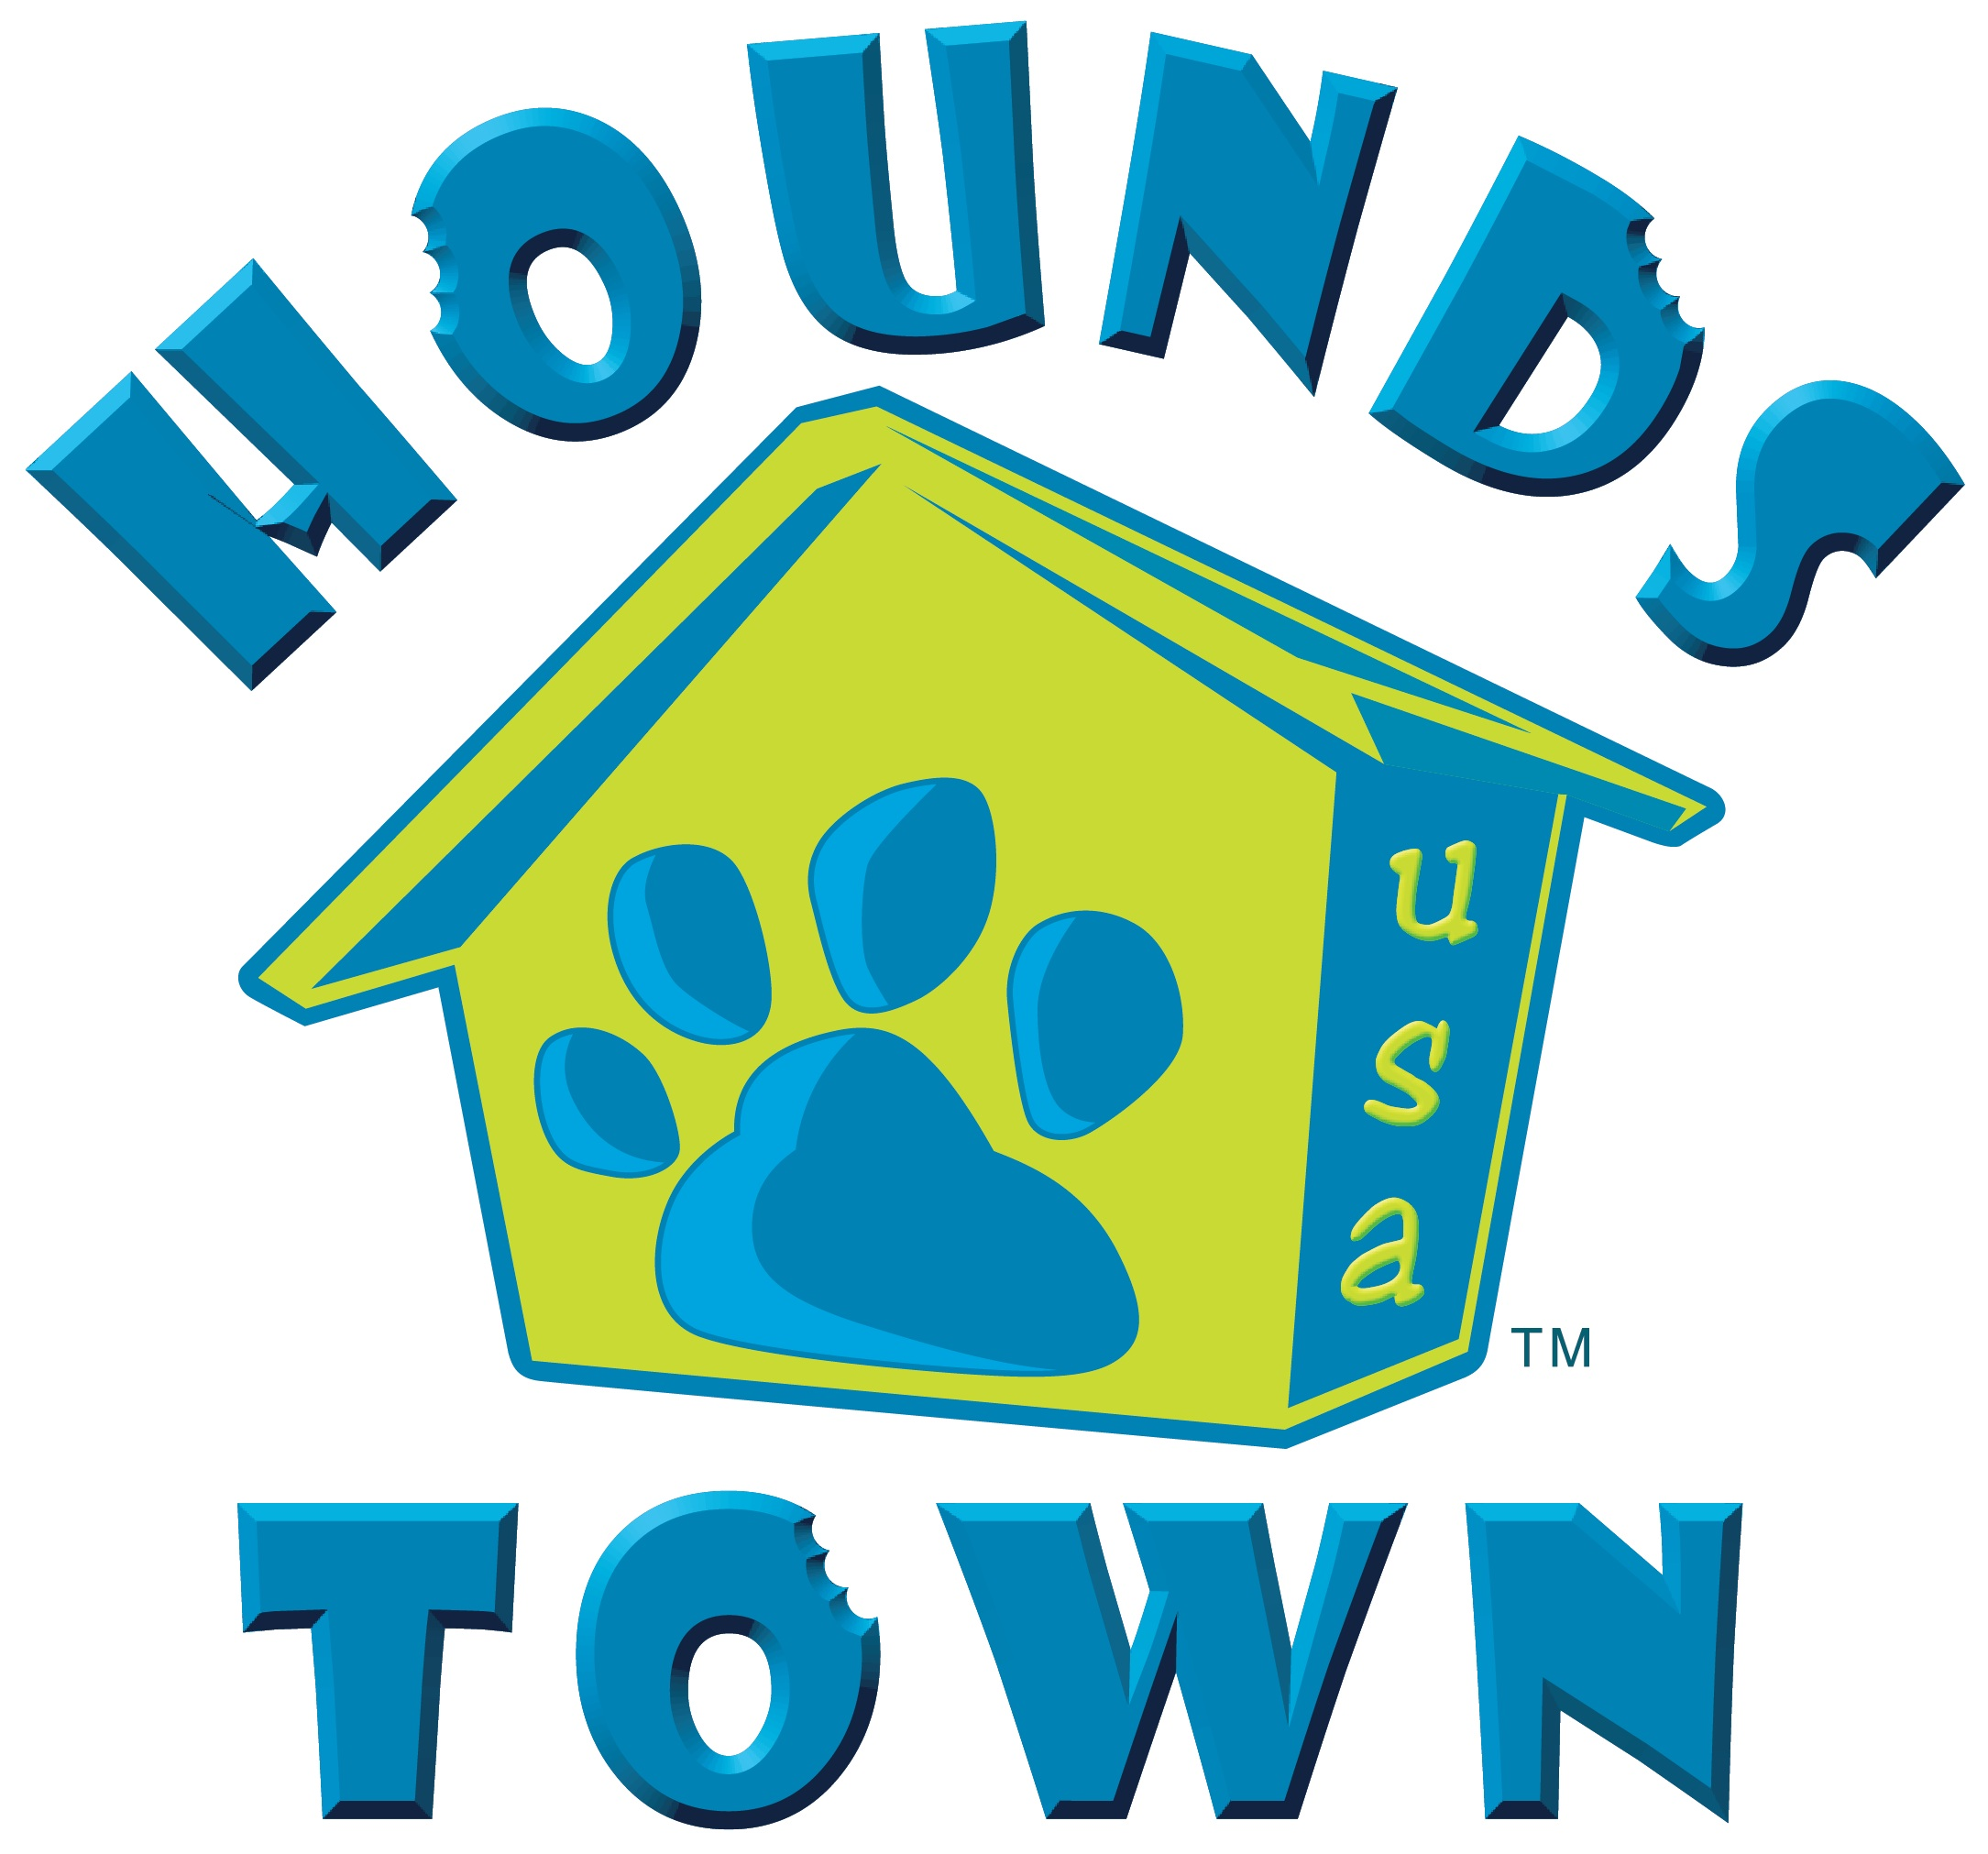 hounds town doghouse logo and word art graphic